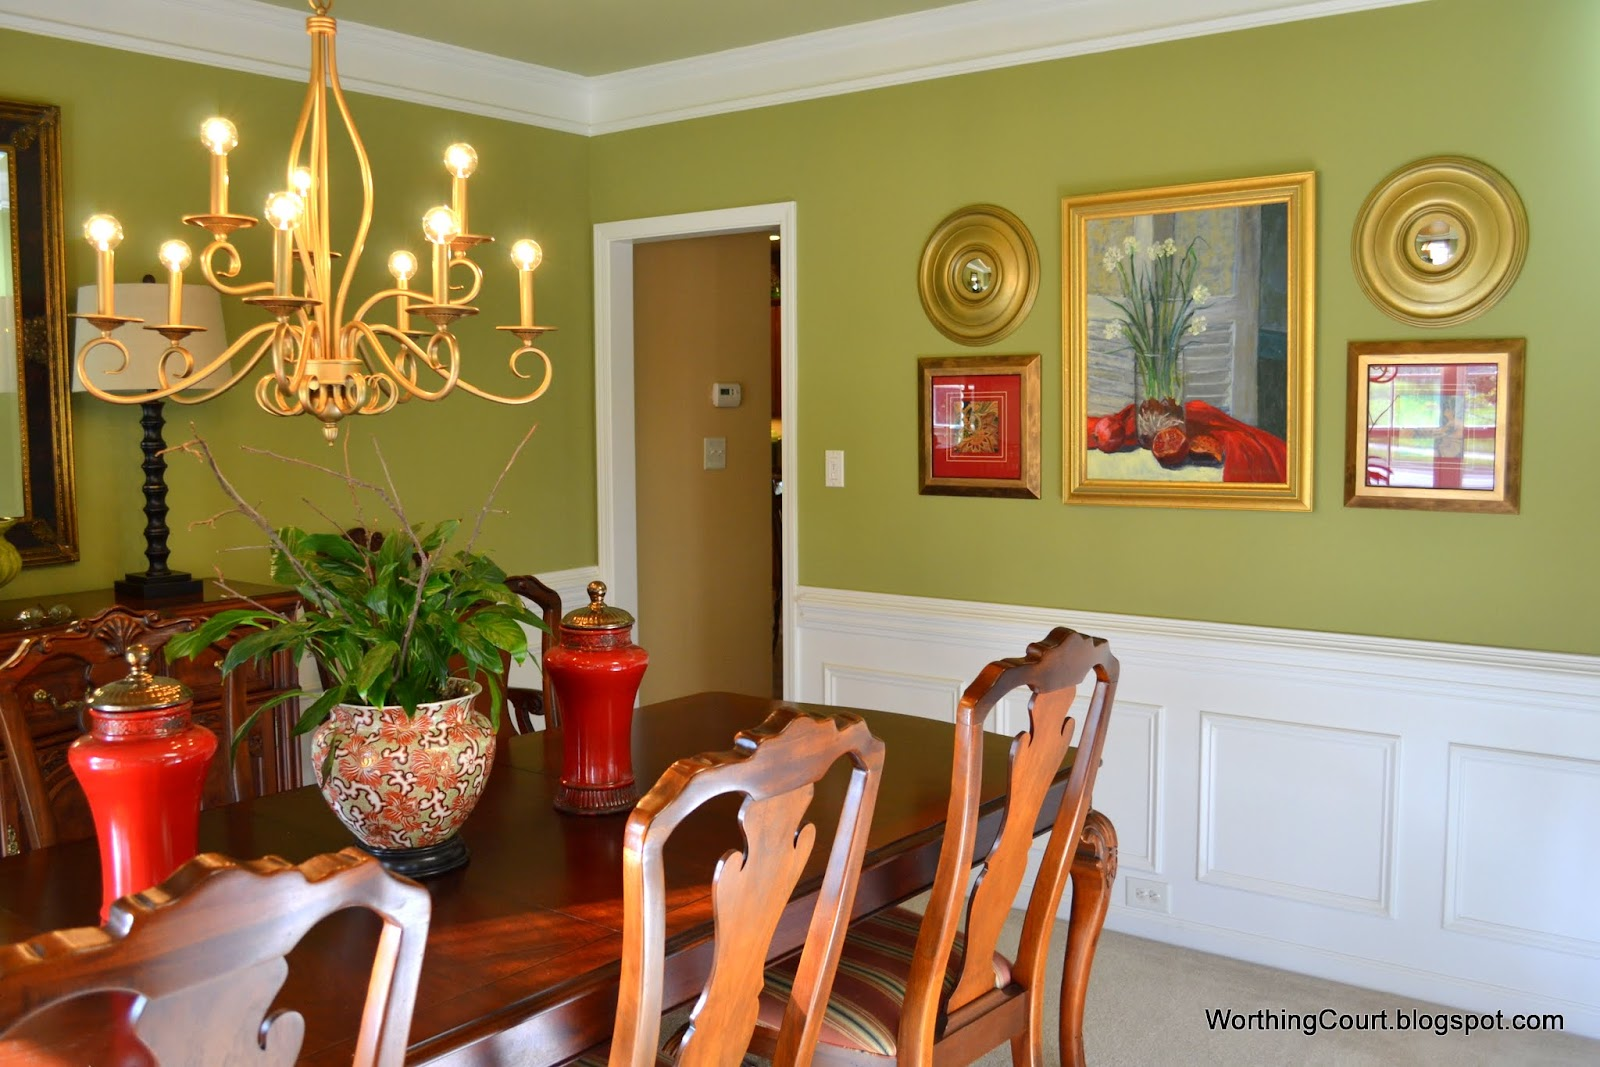 Updated Dining Room Tour - Worthing Court